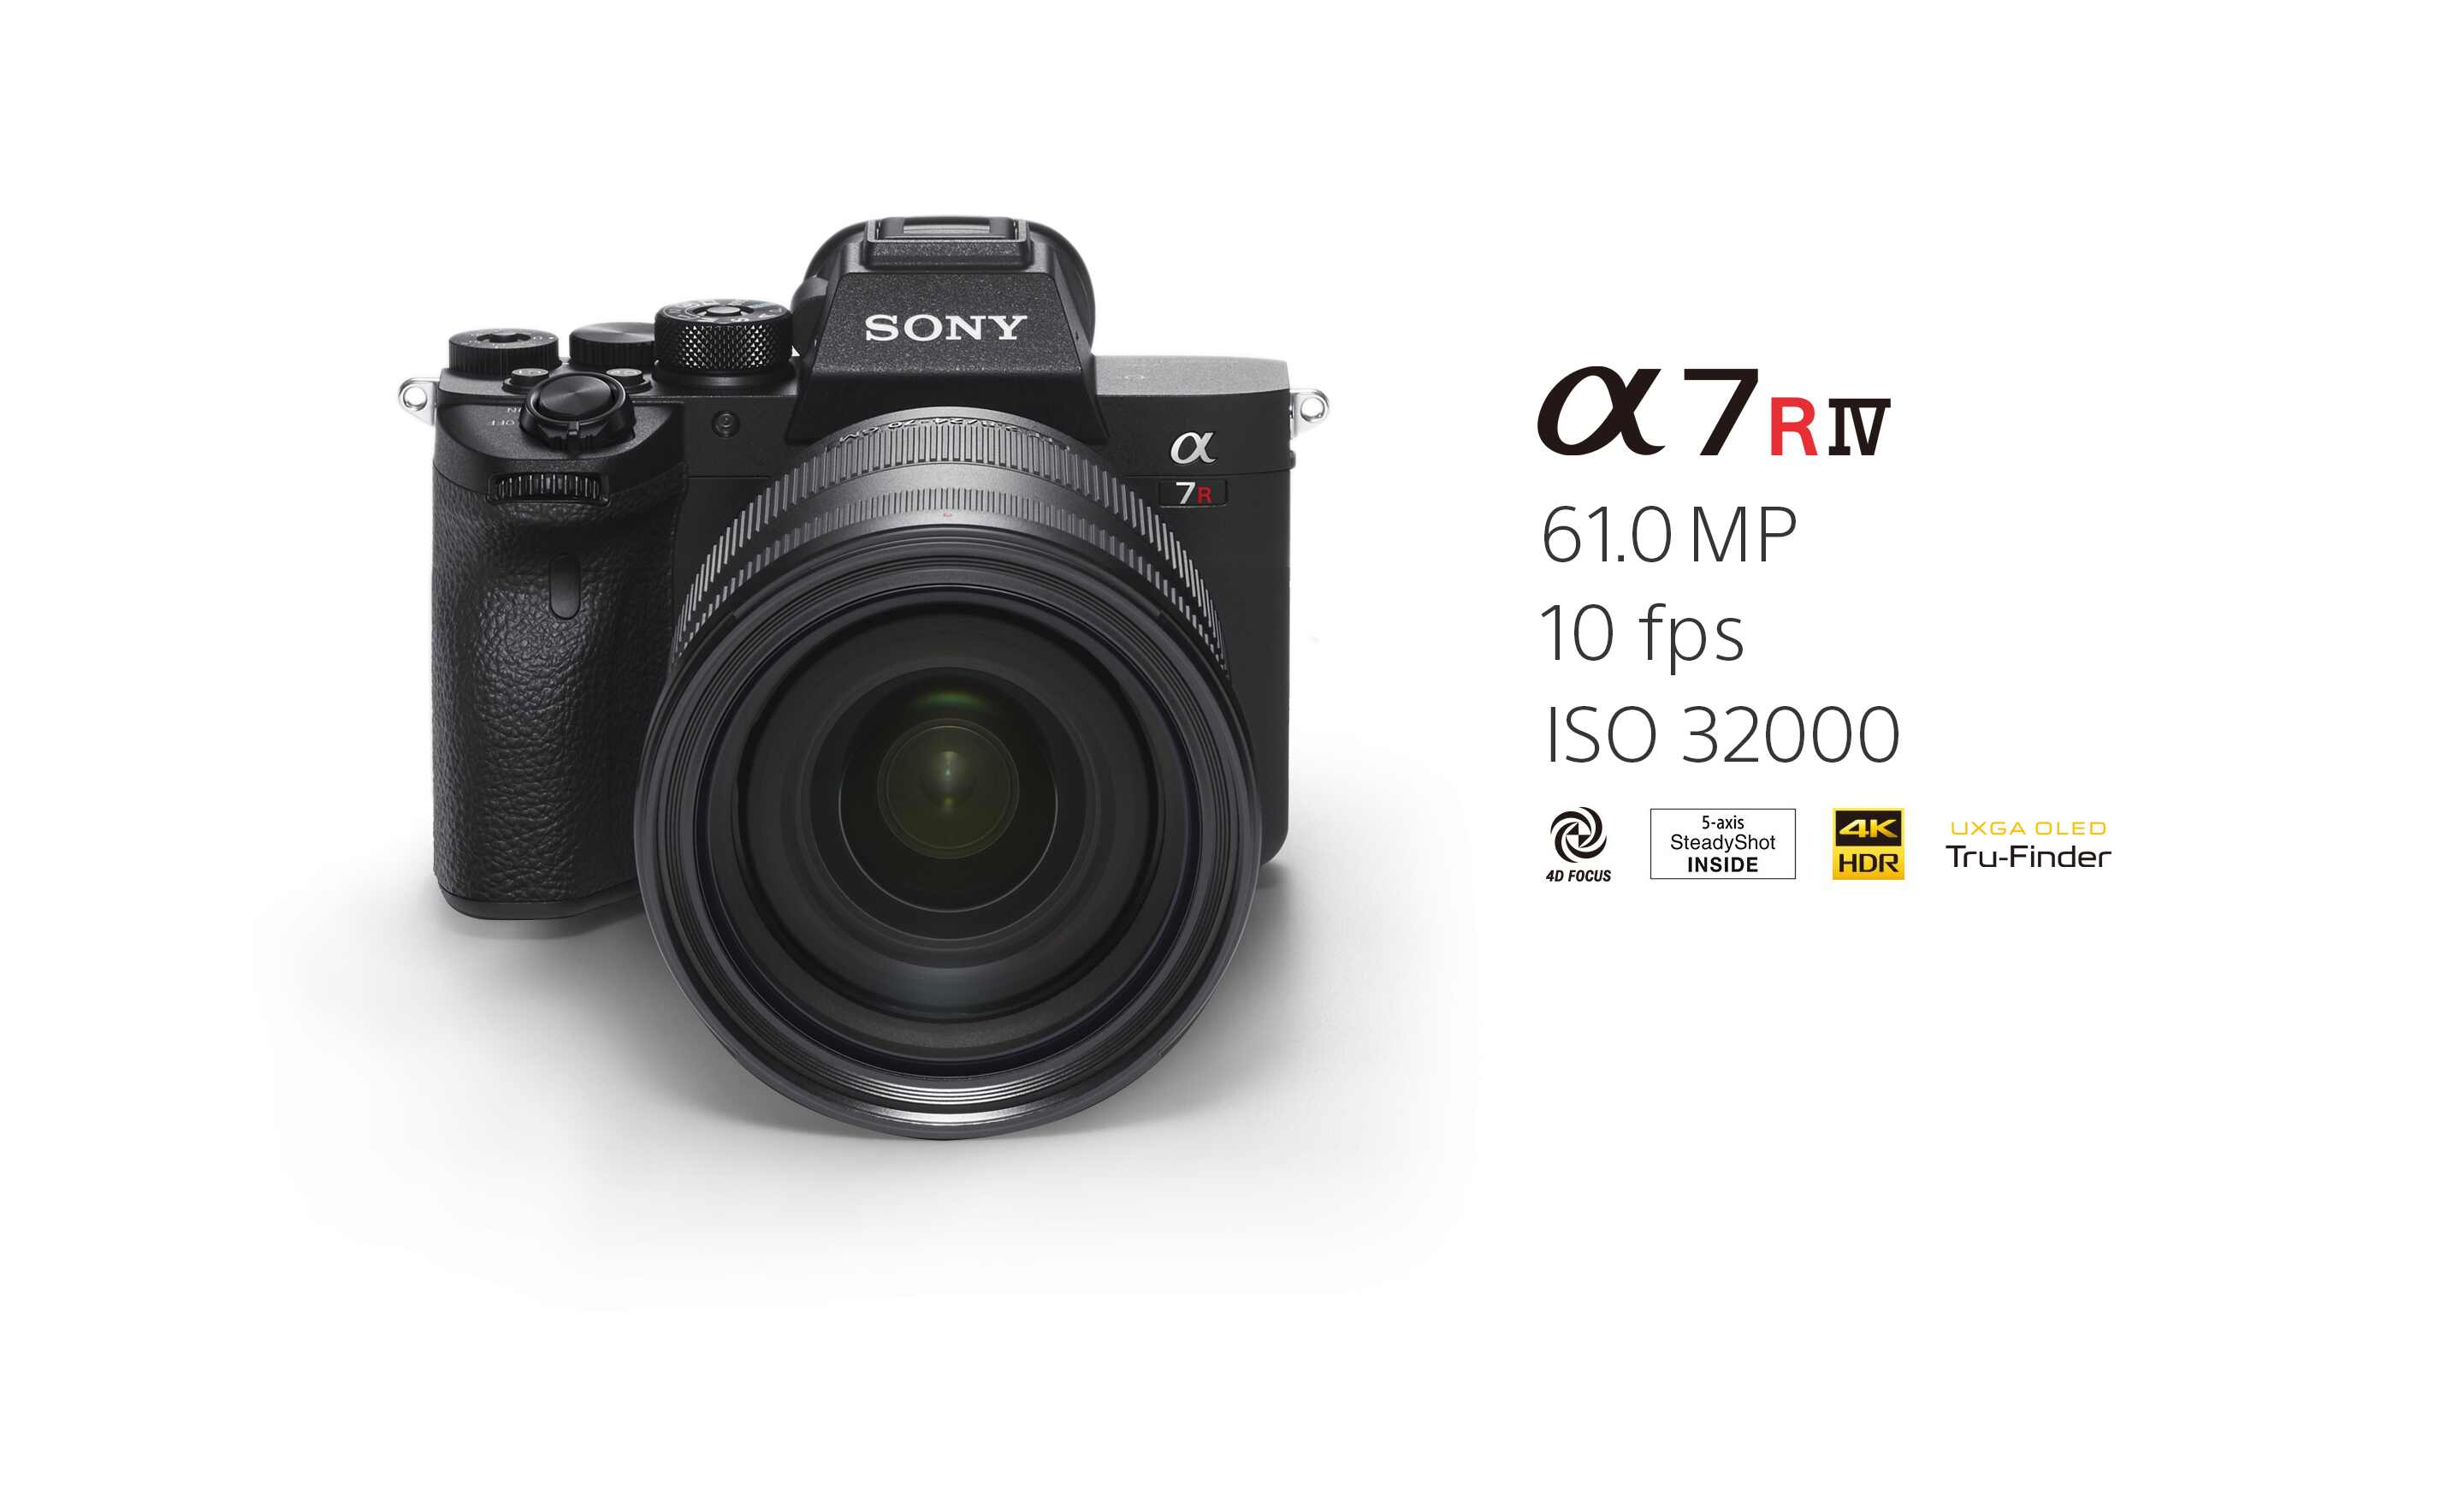 Sony's new A7R IV camera is a 61 MP full-frame mirrorless